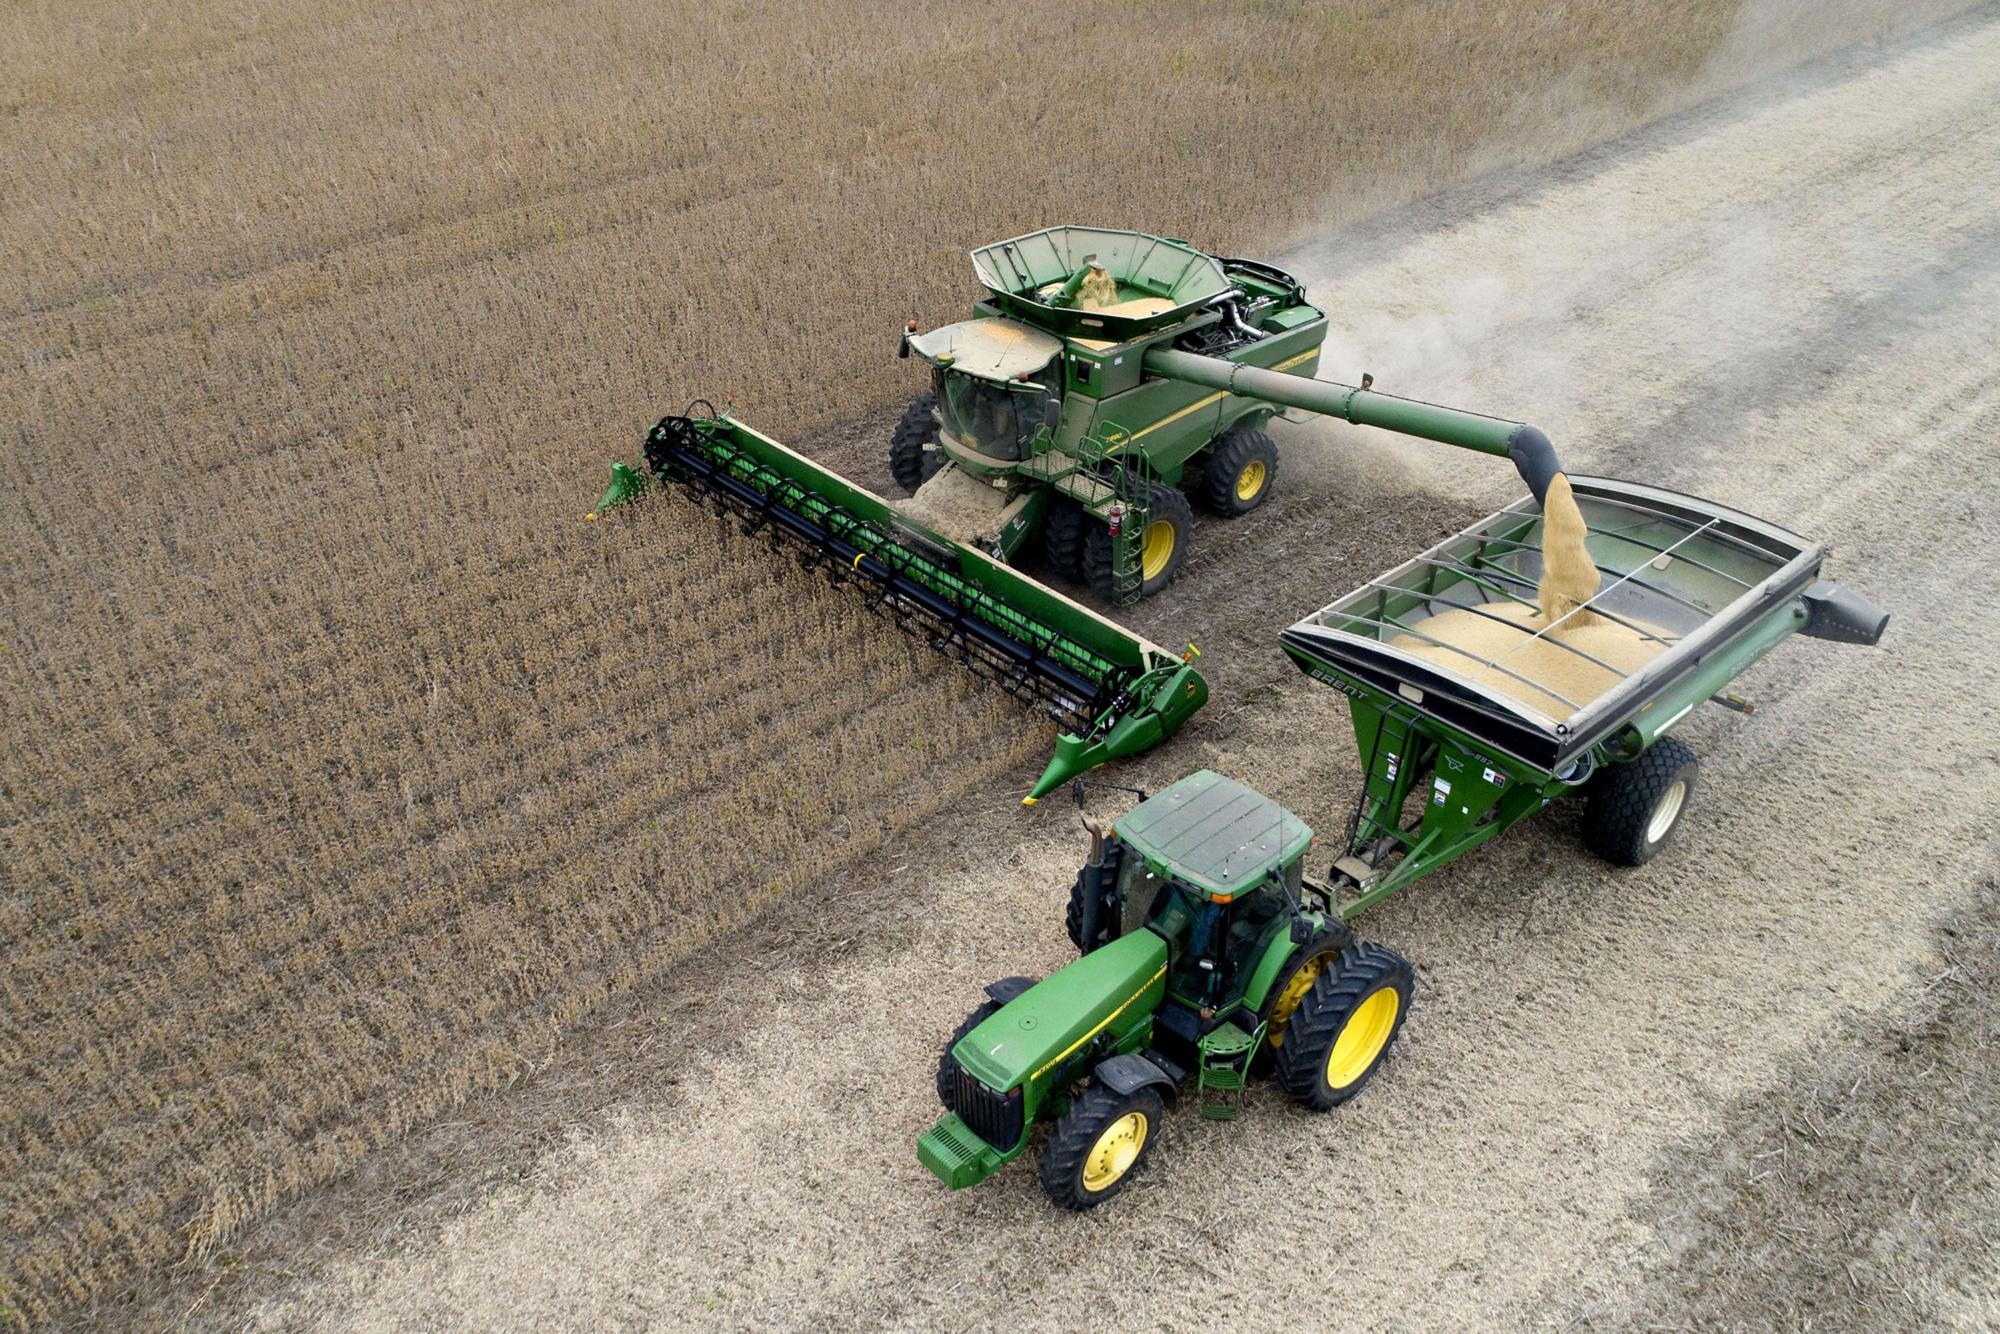 Deere Eyes Cost Cuts to Defend Margins Squeezed by Farm Pain